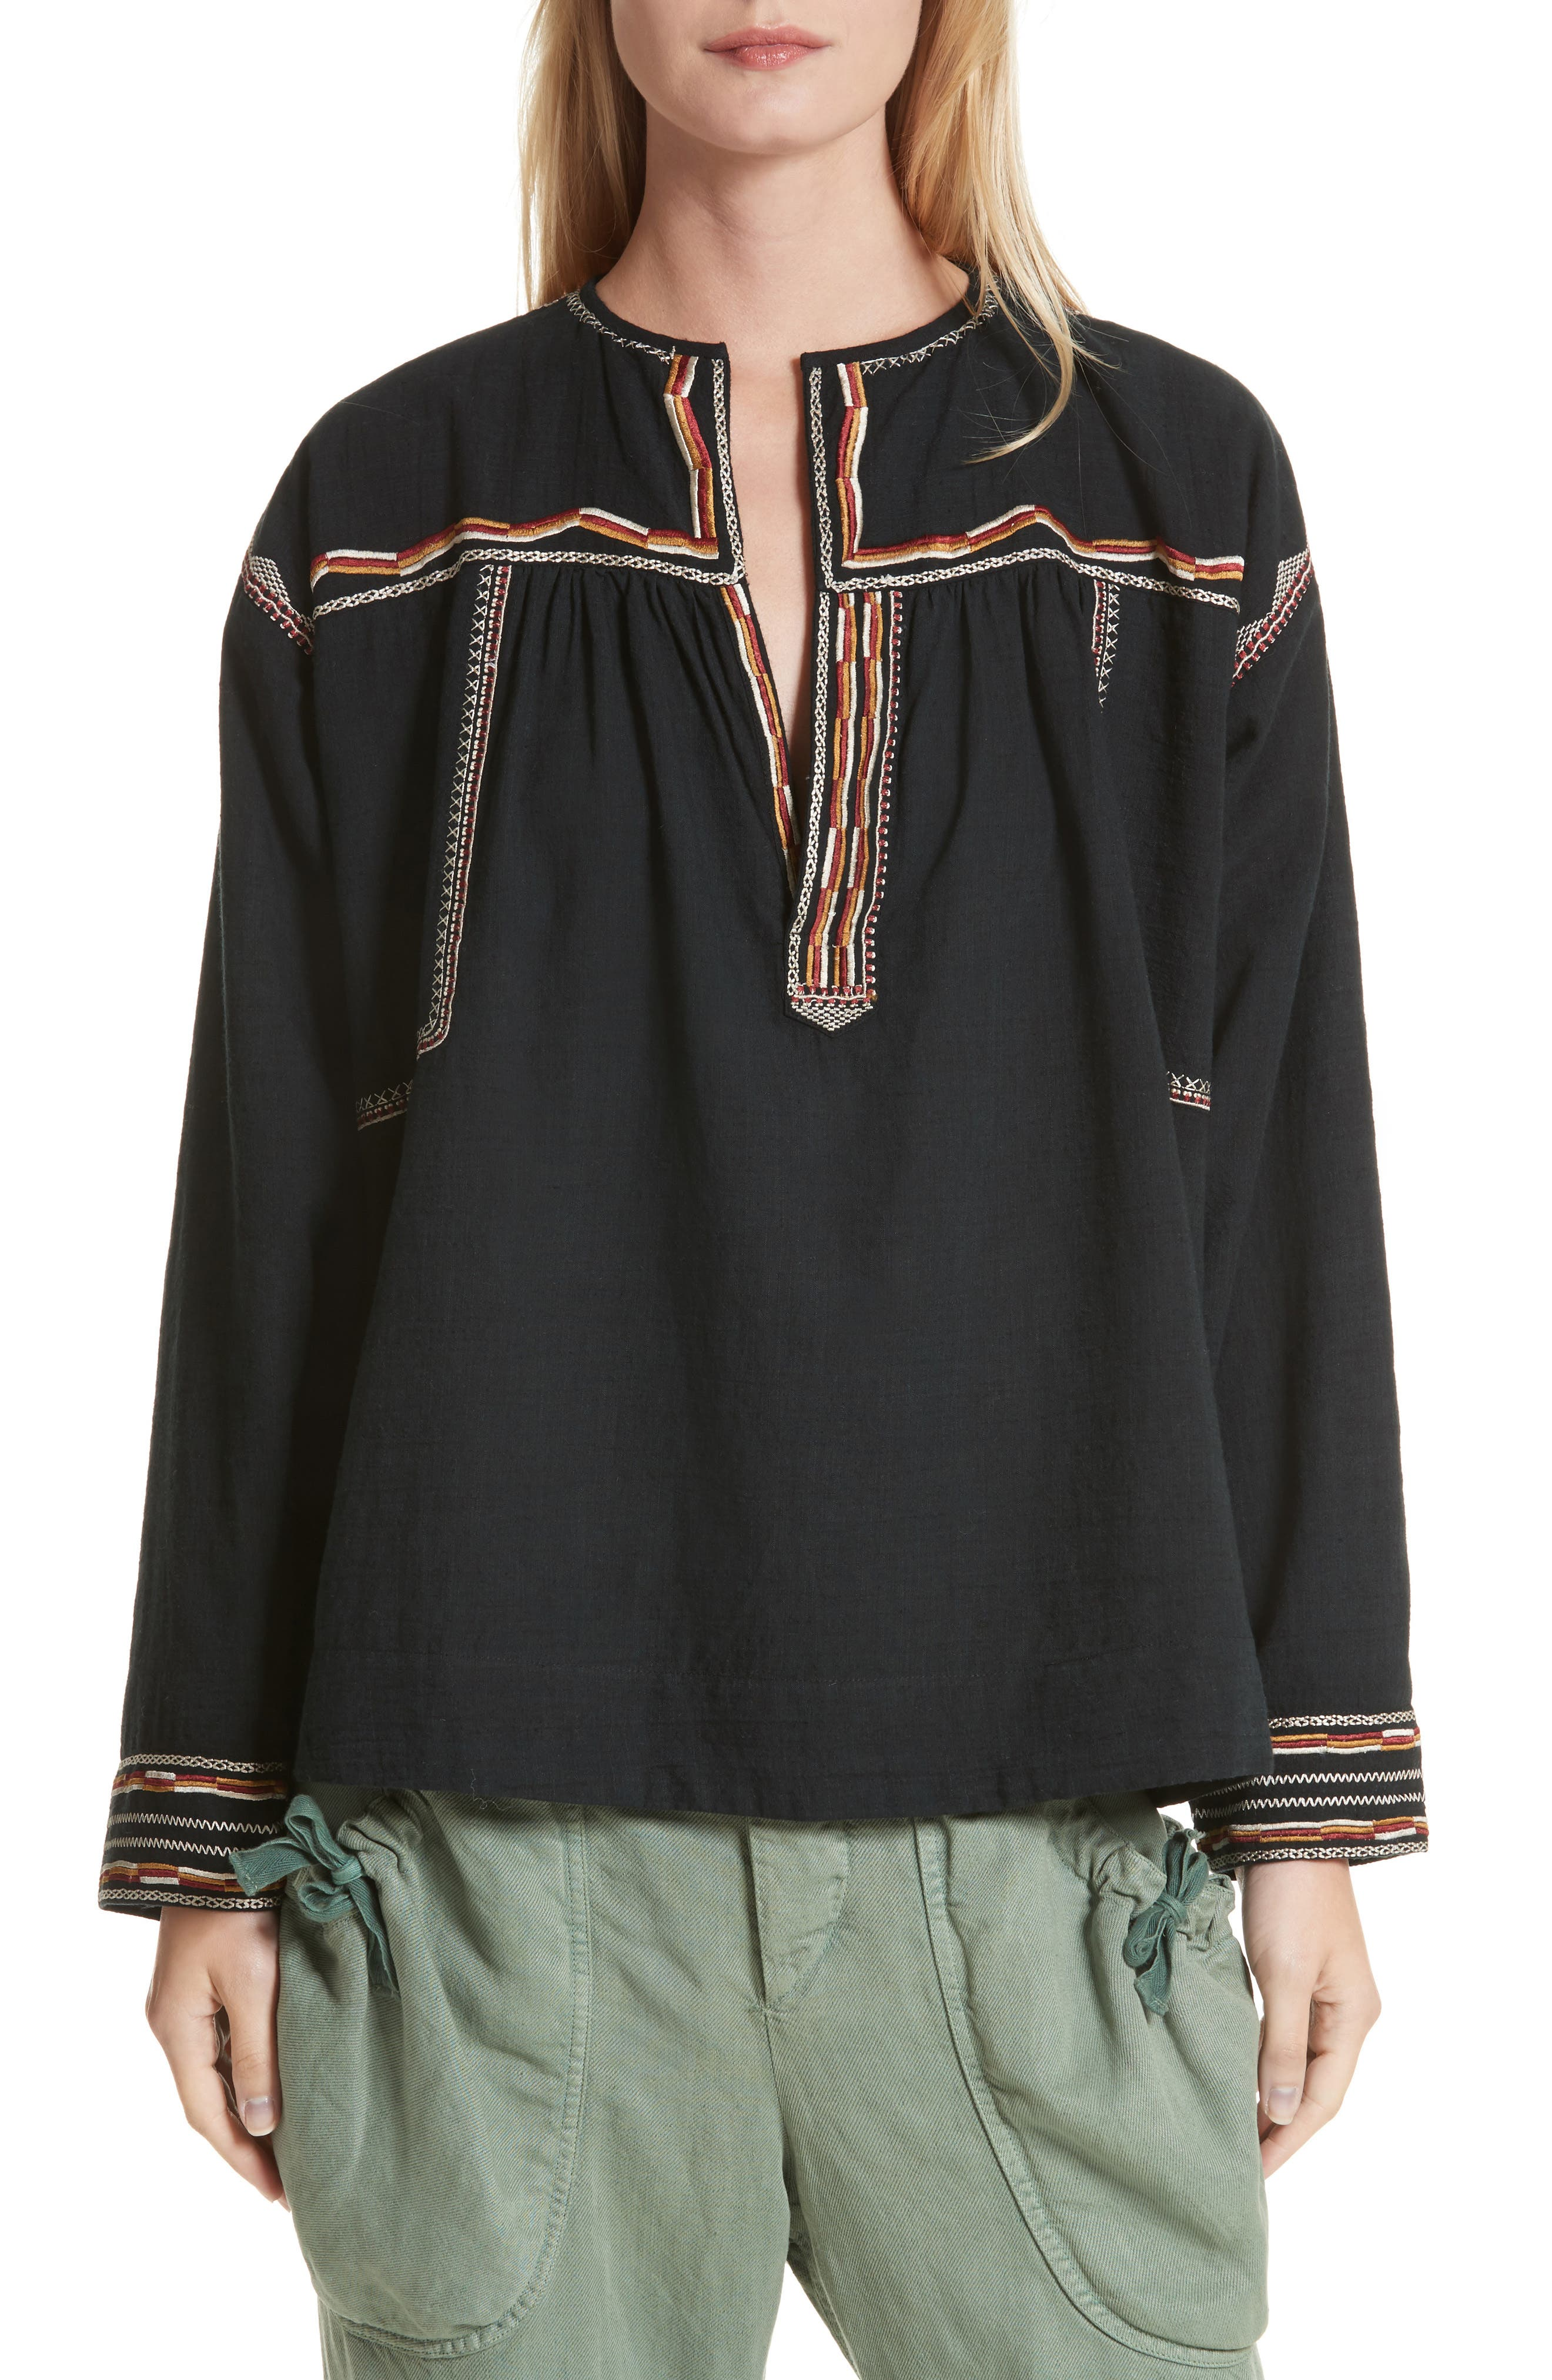 Isabel Marant Étoile Blicky Embroidered Top,                         Main,                         color, Black